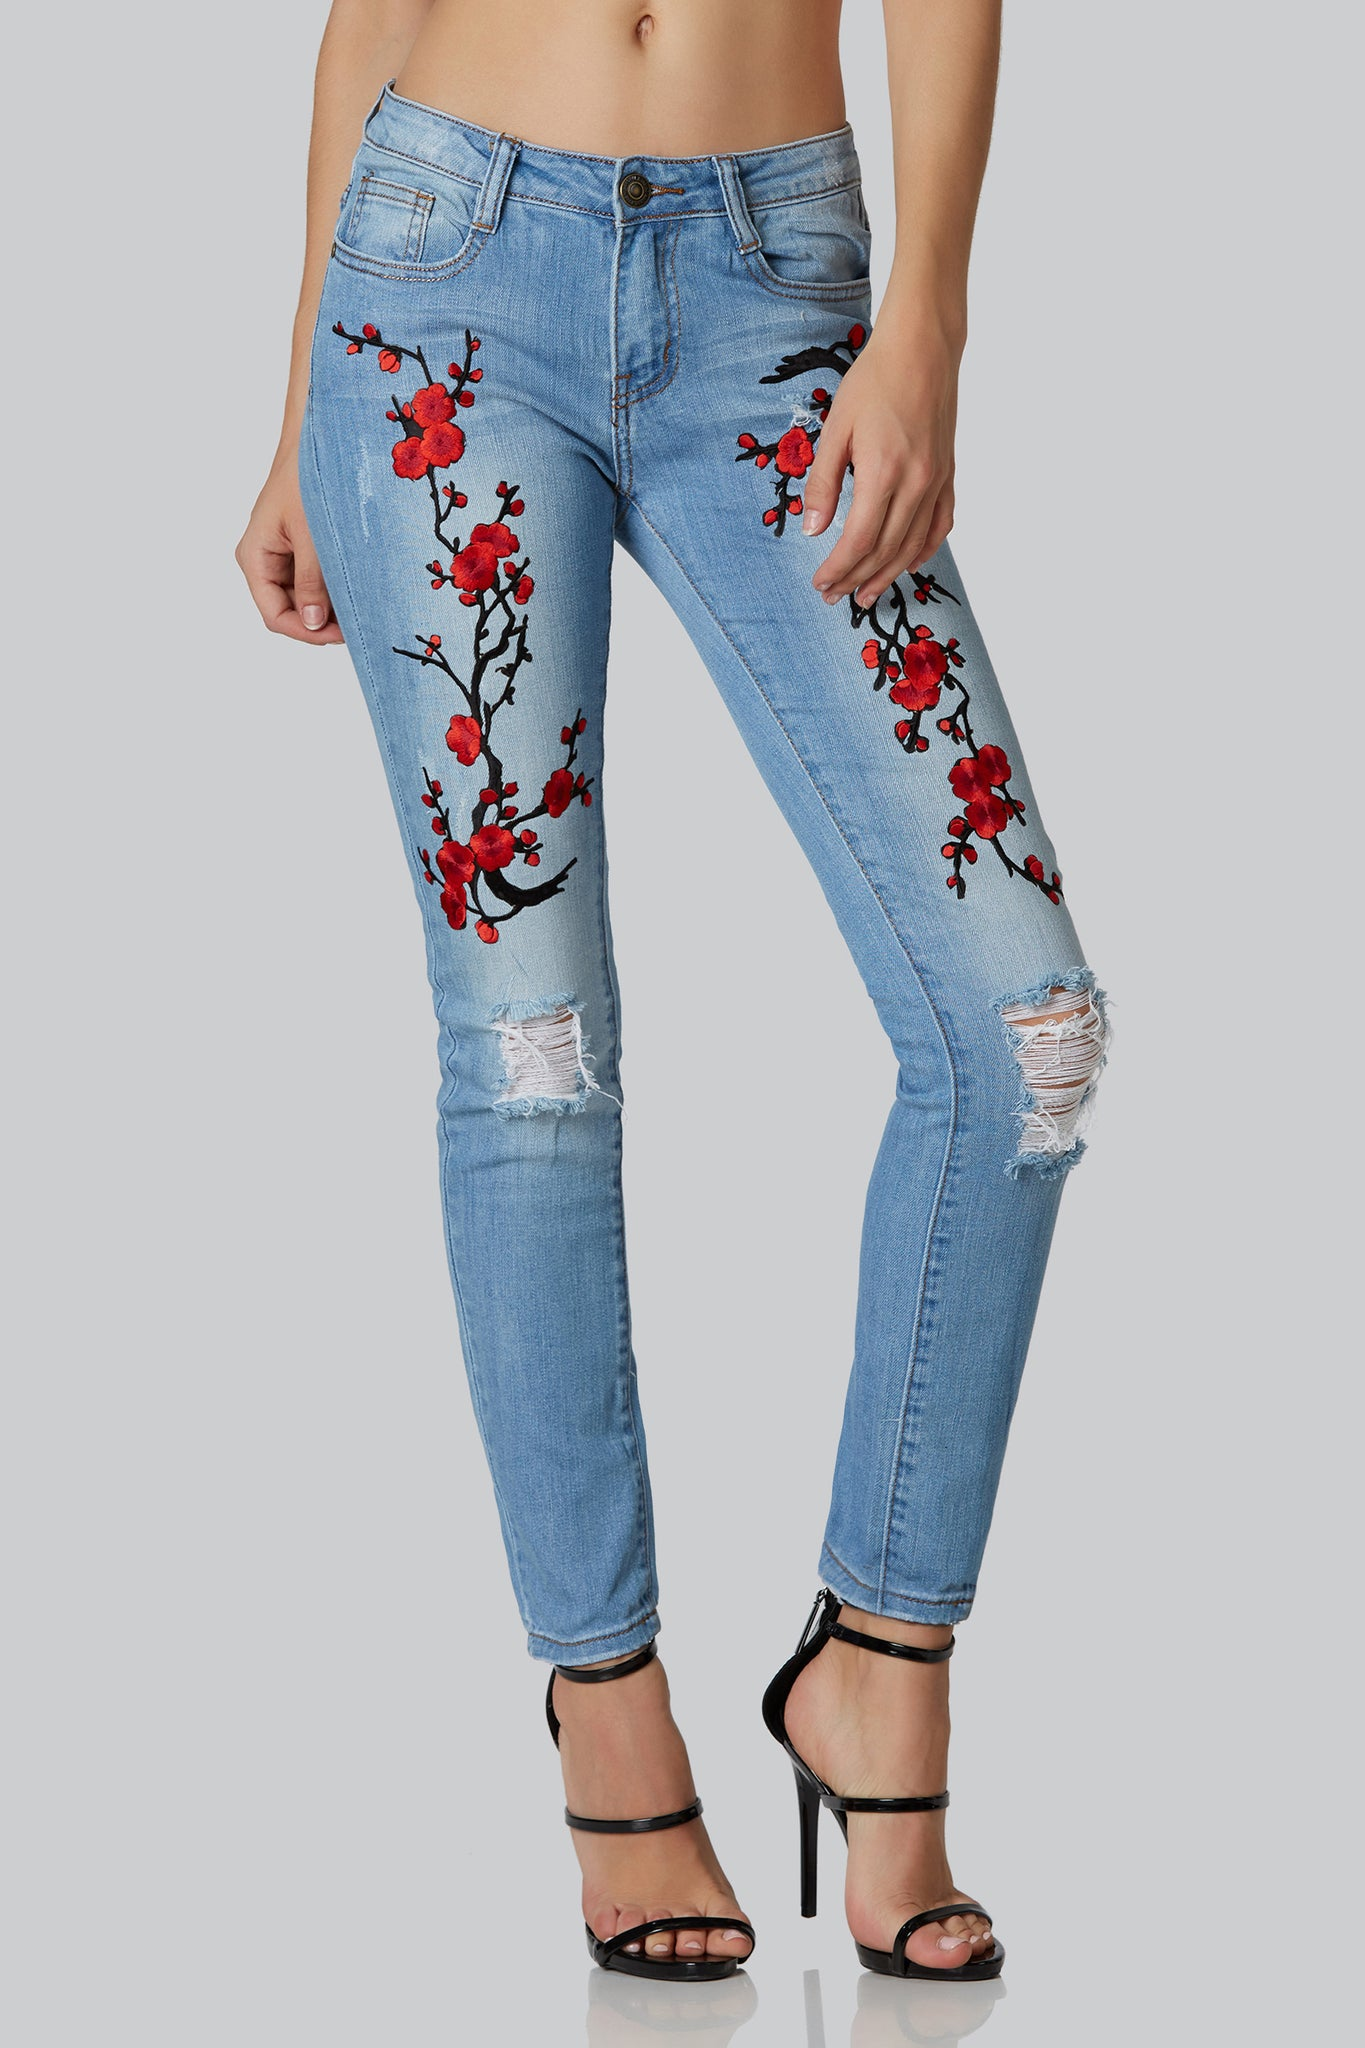 Machine cherry bomb embroidered jeans necessary clothing stylish mid rise jeans with bold cherry blossom embroidery in front faded wash with soft ccuart Gallery